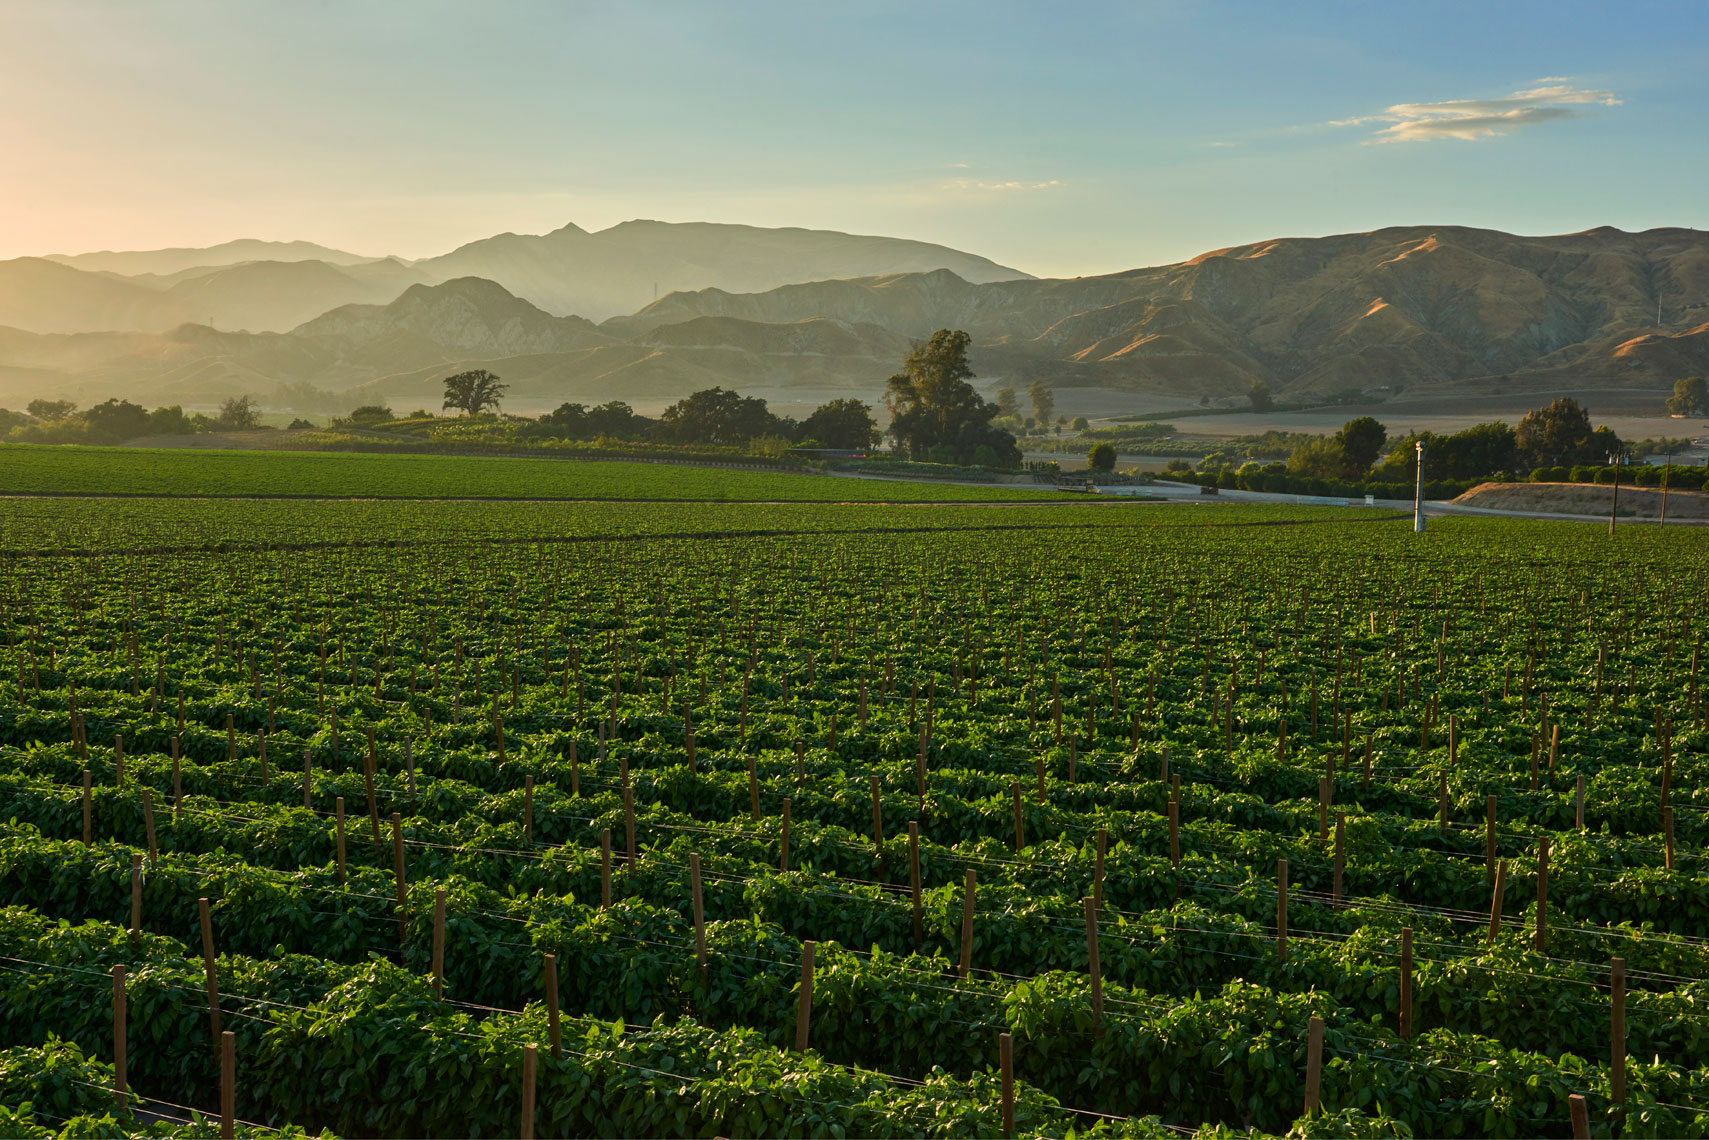 Bell-pepper-farm-field-at-sunset-with-mountains-in-the-background-by-California-landscape-photographer-Joe-Atlas..